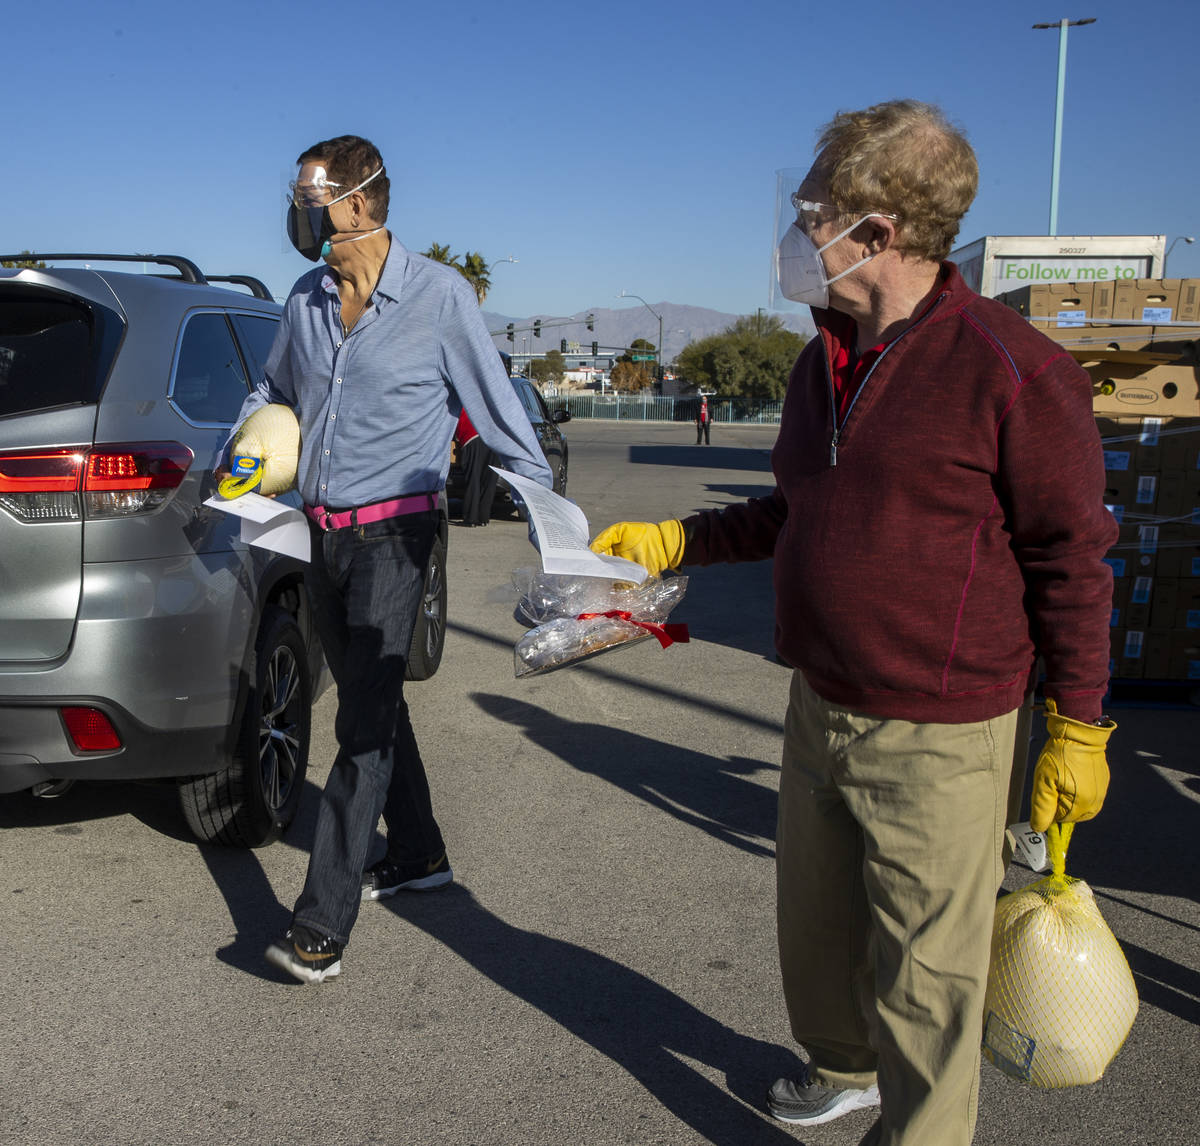 Penn & Teller carry over turkeys and cookies to awaiting vehicles during the re-opening of the ...